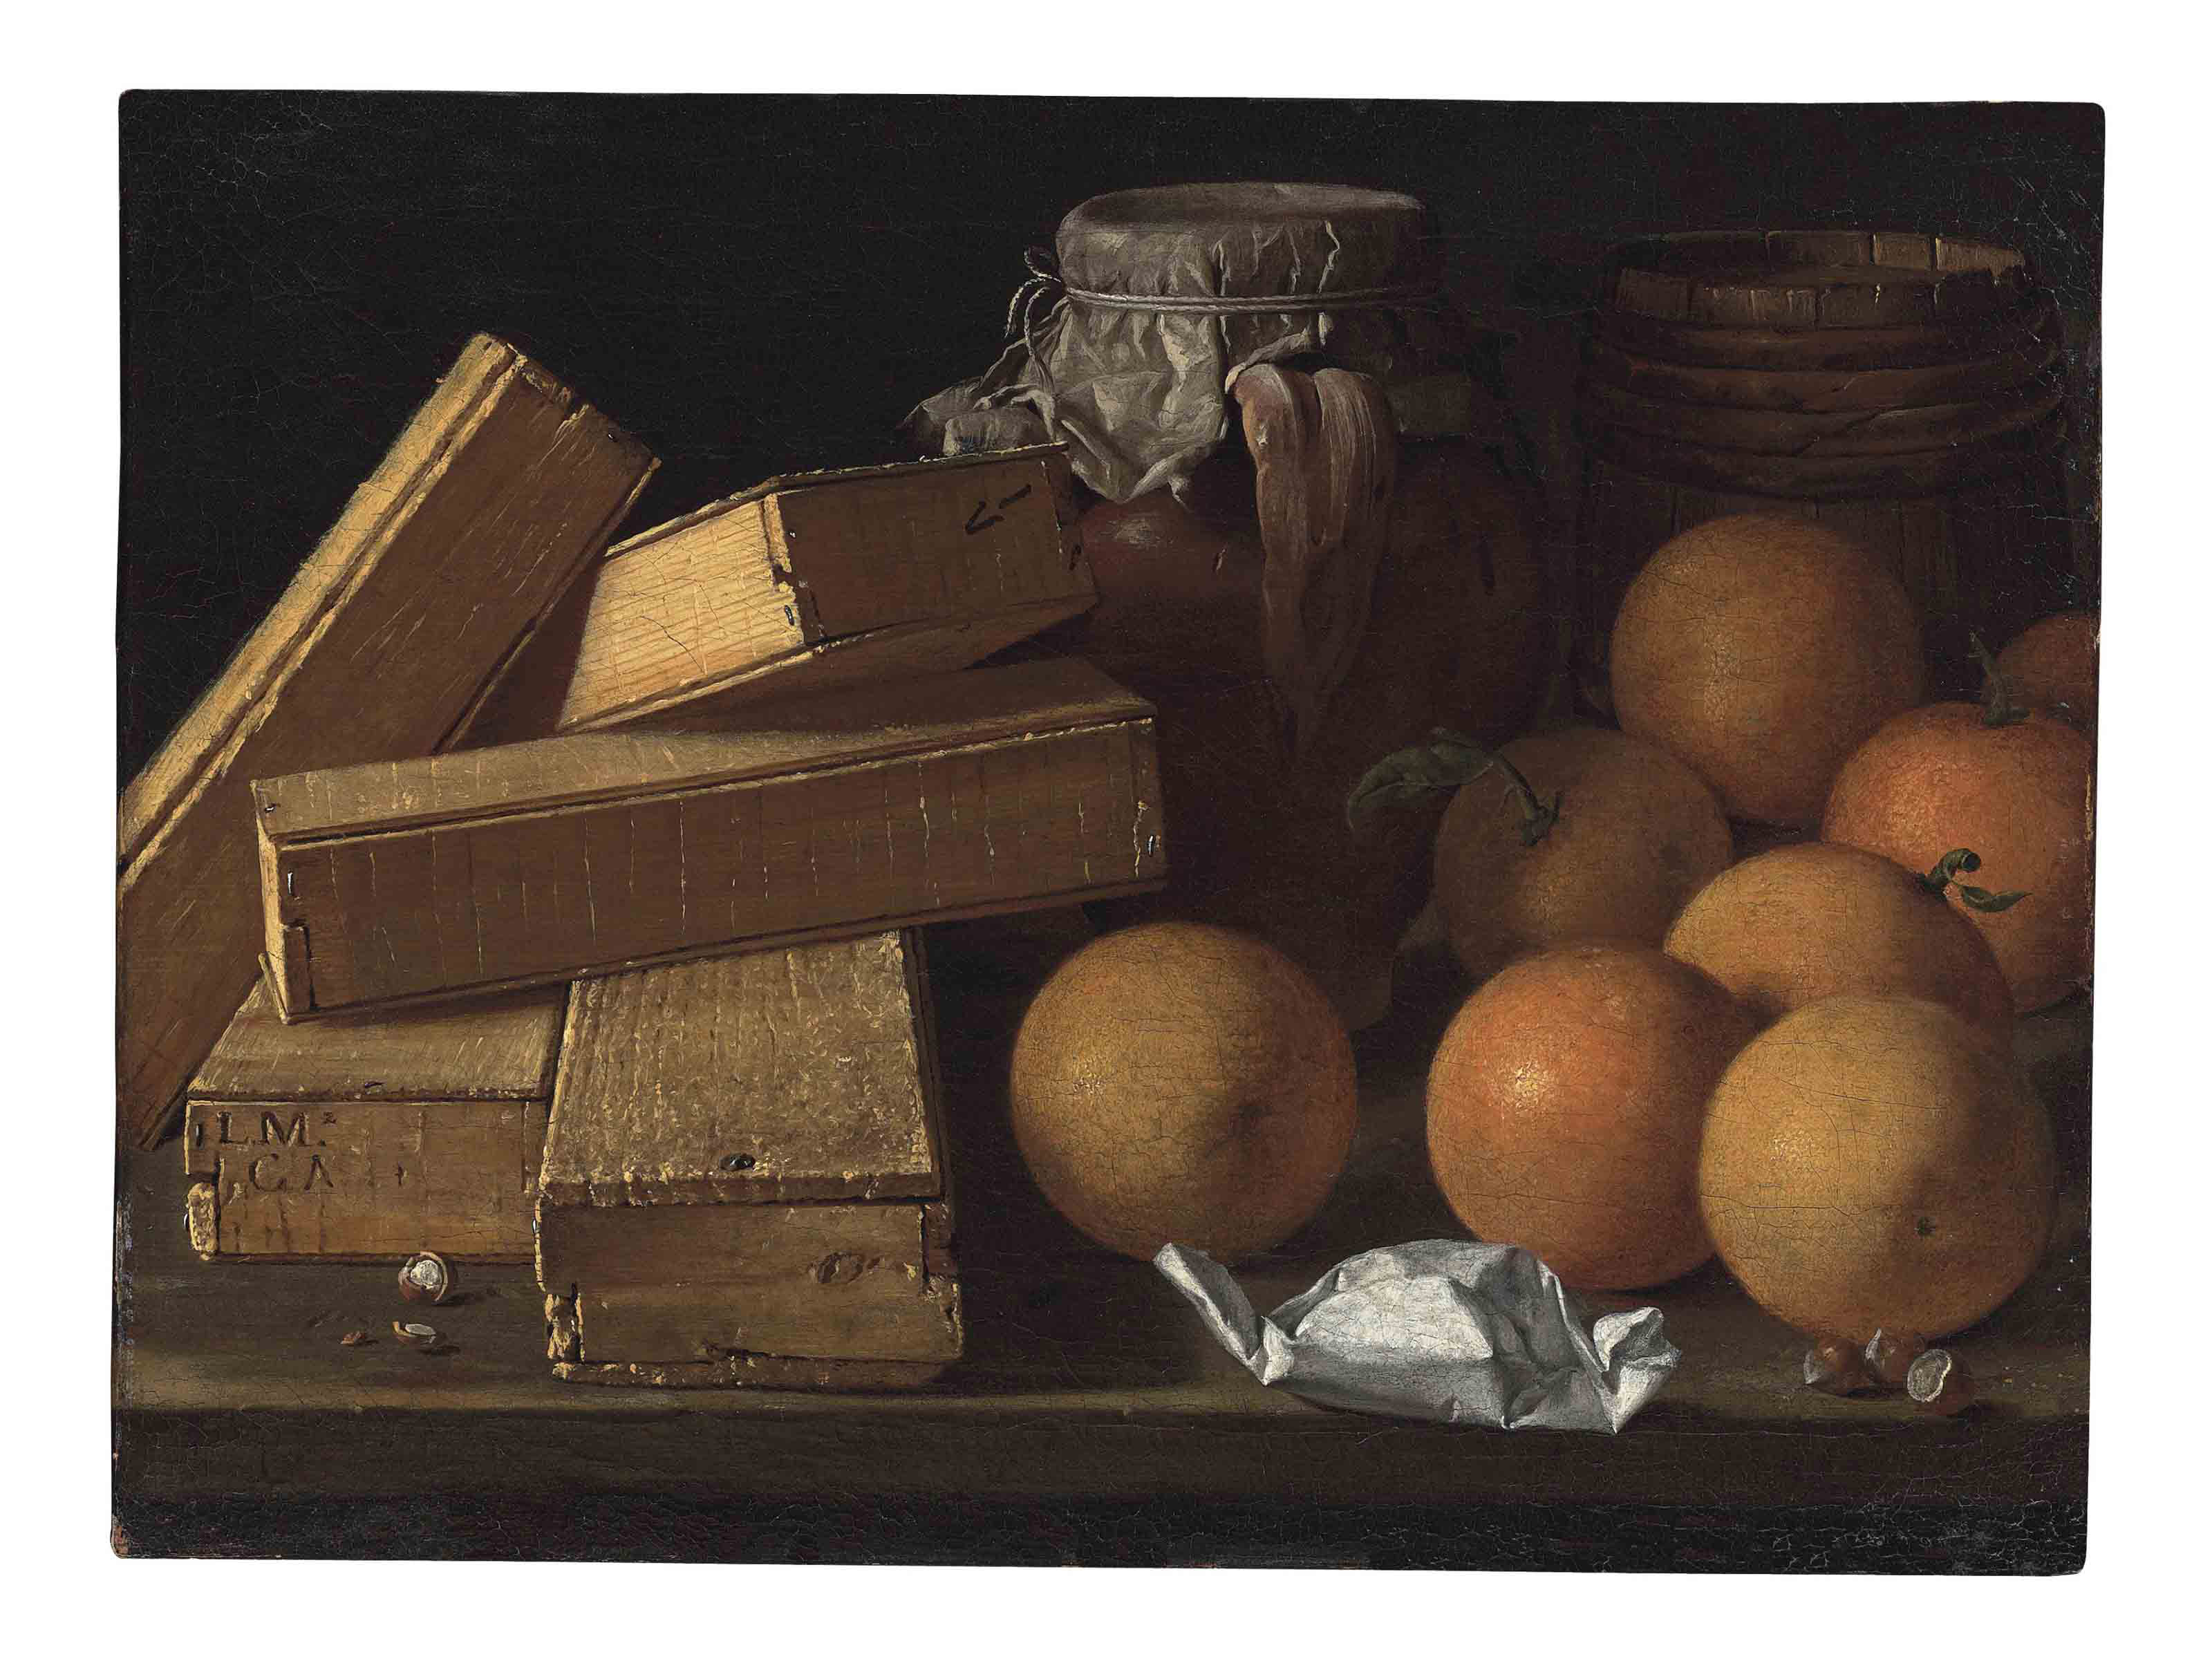 Oranges, nuts, spices, boxes of sweetmeats, a jug and a cask on a table